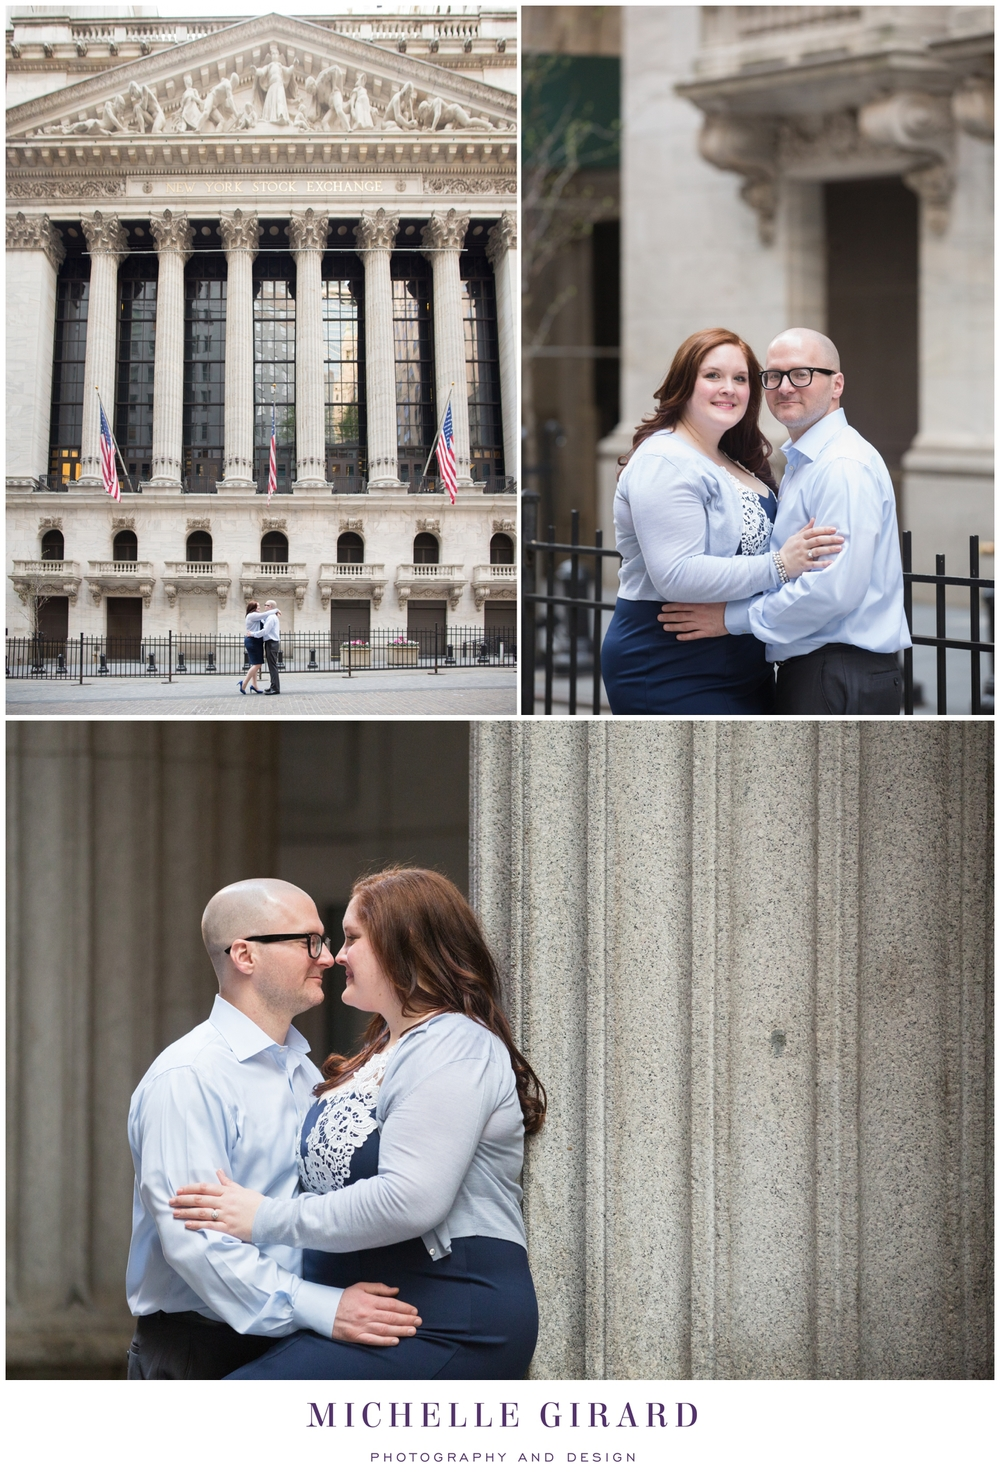 NewYorkCityEngagementSession_FinancialDistrict_MichelleGirardPhotography04.jpg